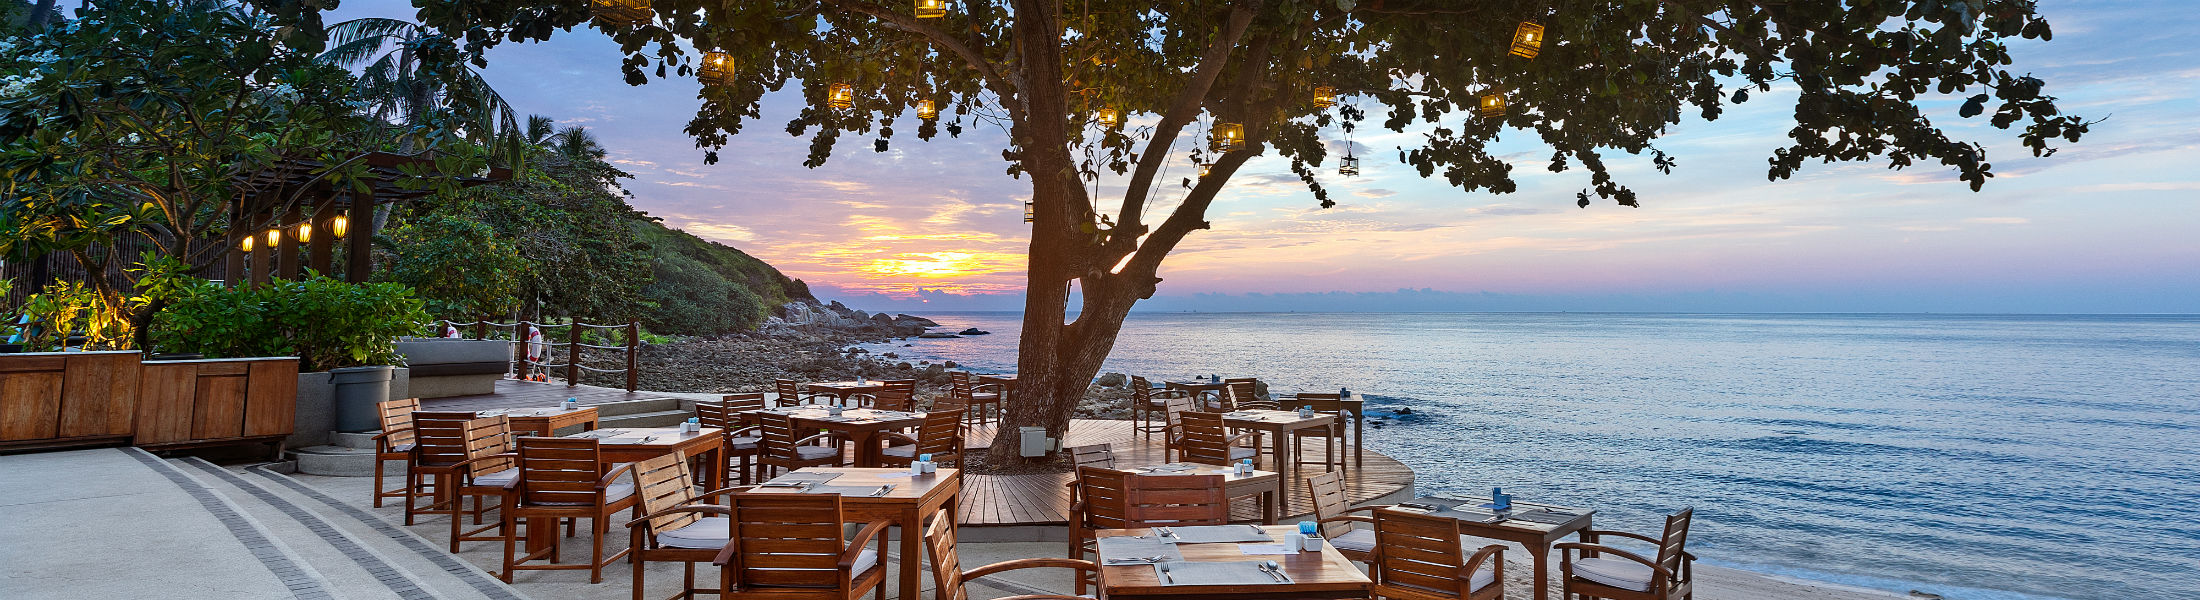 Outdoor dining at sunset at Outrigger Koh Samui Beach Resort